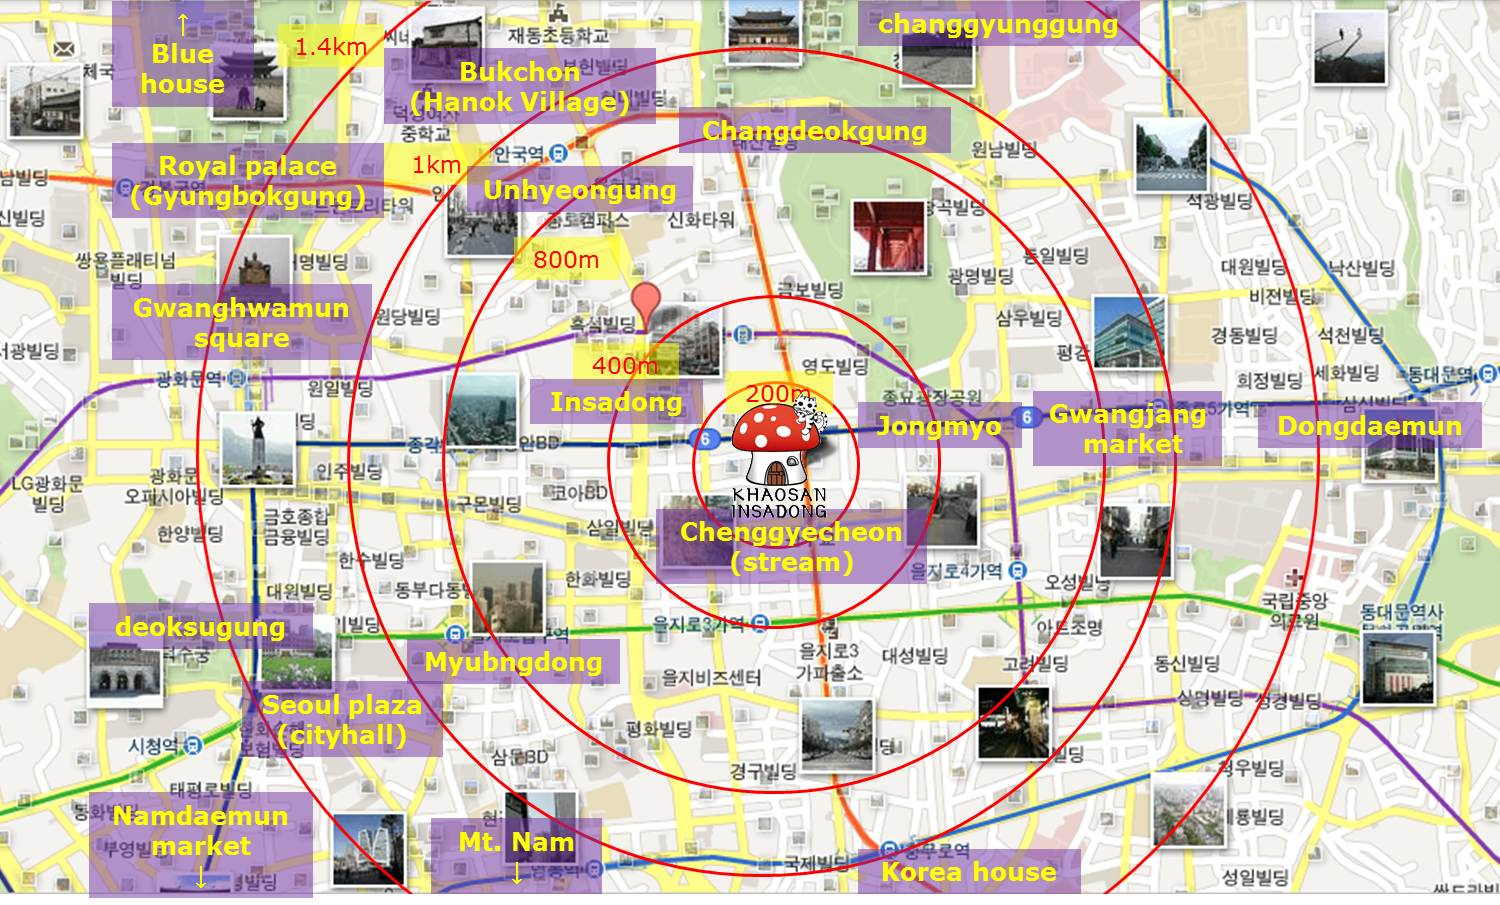 Cikgu MIDADs missADVENTURES I LOVE ATLAS AND MAPS – Seoul Tourist Attractions Map